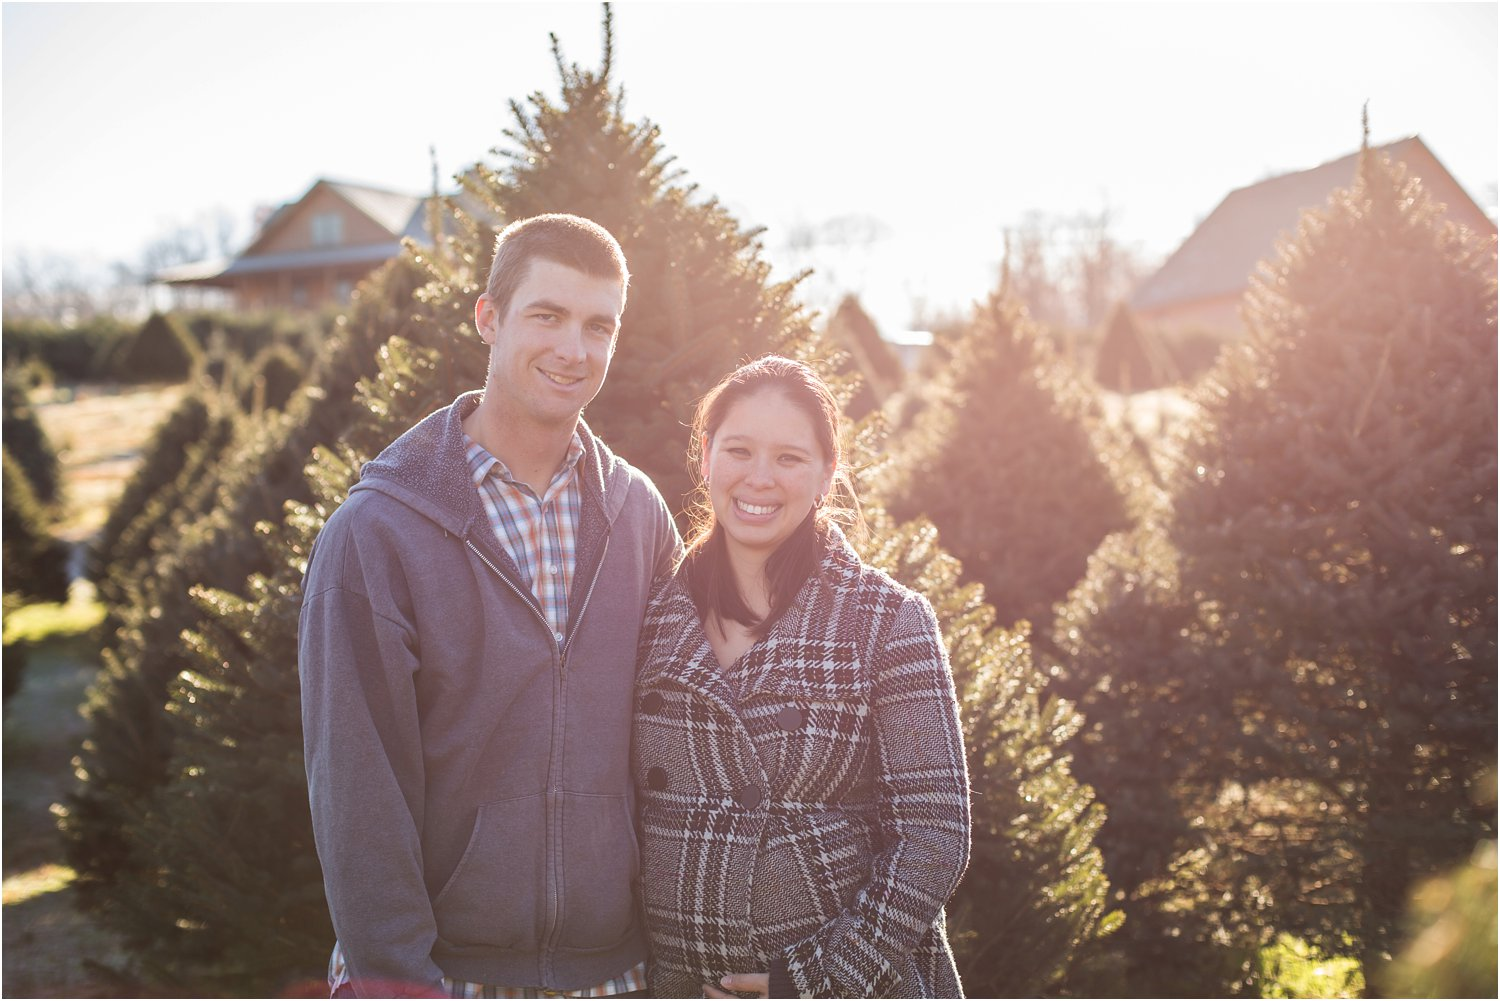 Moose_Apple_Chrismas_Tree_Farm_Family_Portraits_0006.jpg